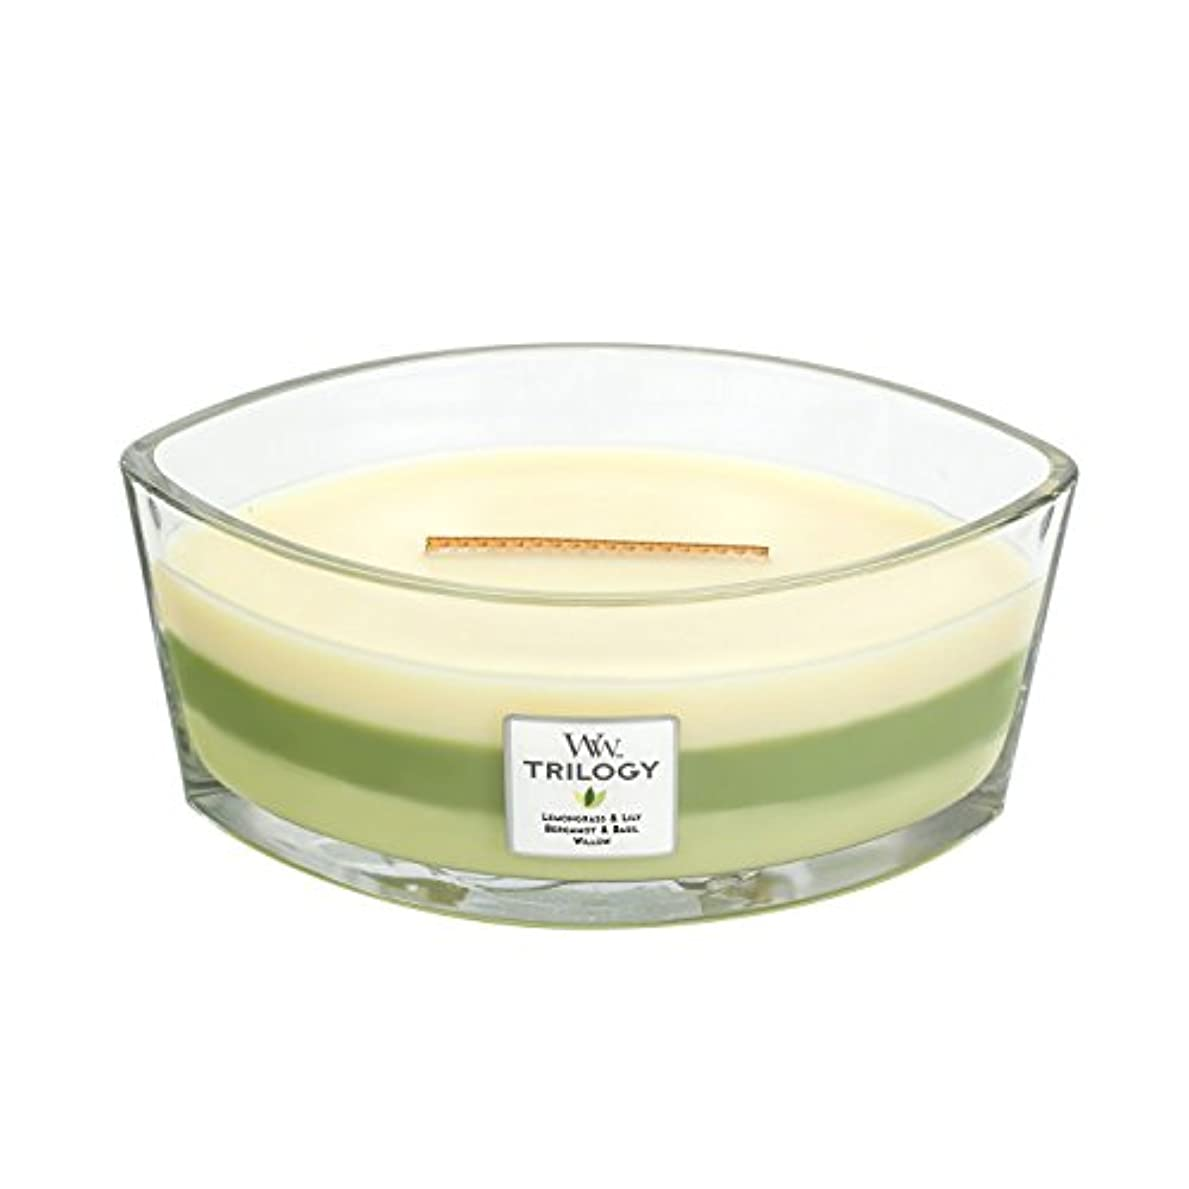 WoodWick Trilogy GARDEN OASIS, 3-in-1 Highly Scented Candle, Ellipse Glass Jar with Original HearthWick Flame,...